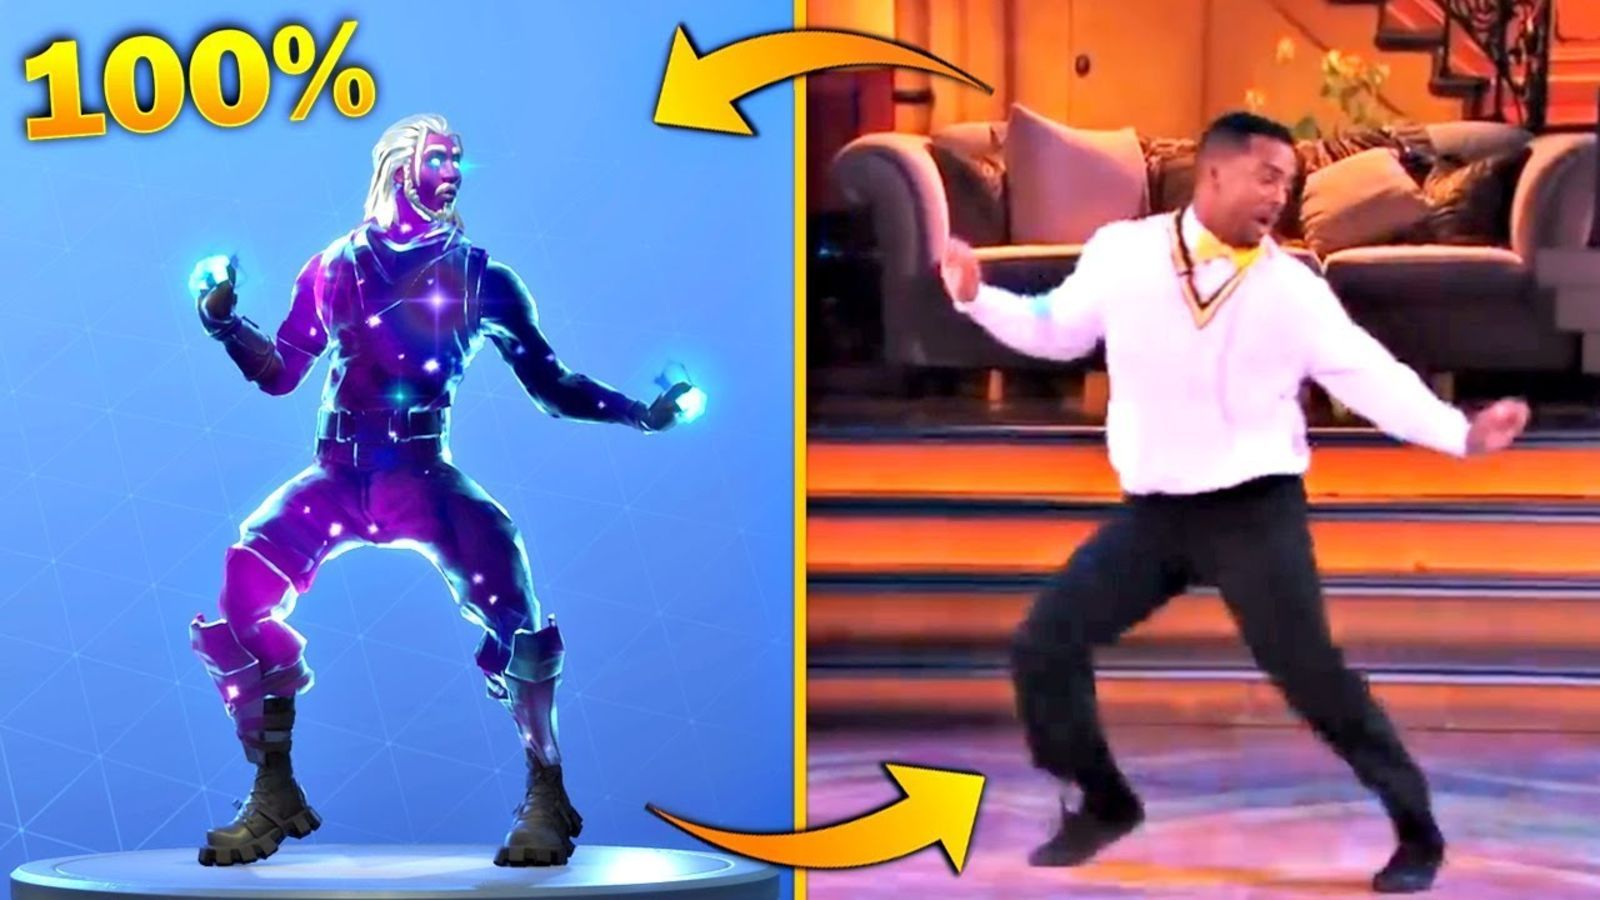 Why Is Epic Games Getting Sued Over Fortnite's Dance Moves